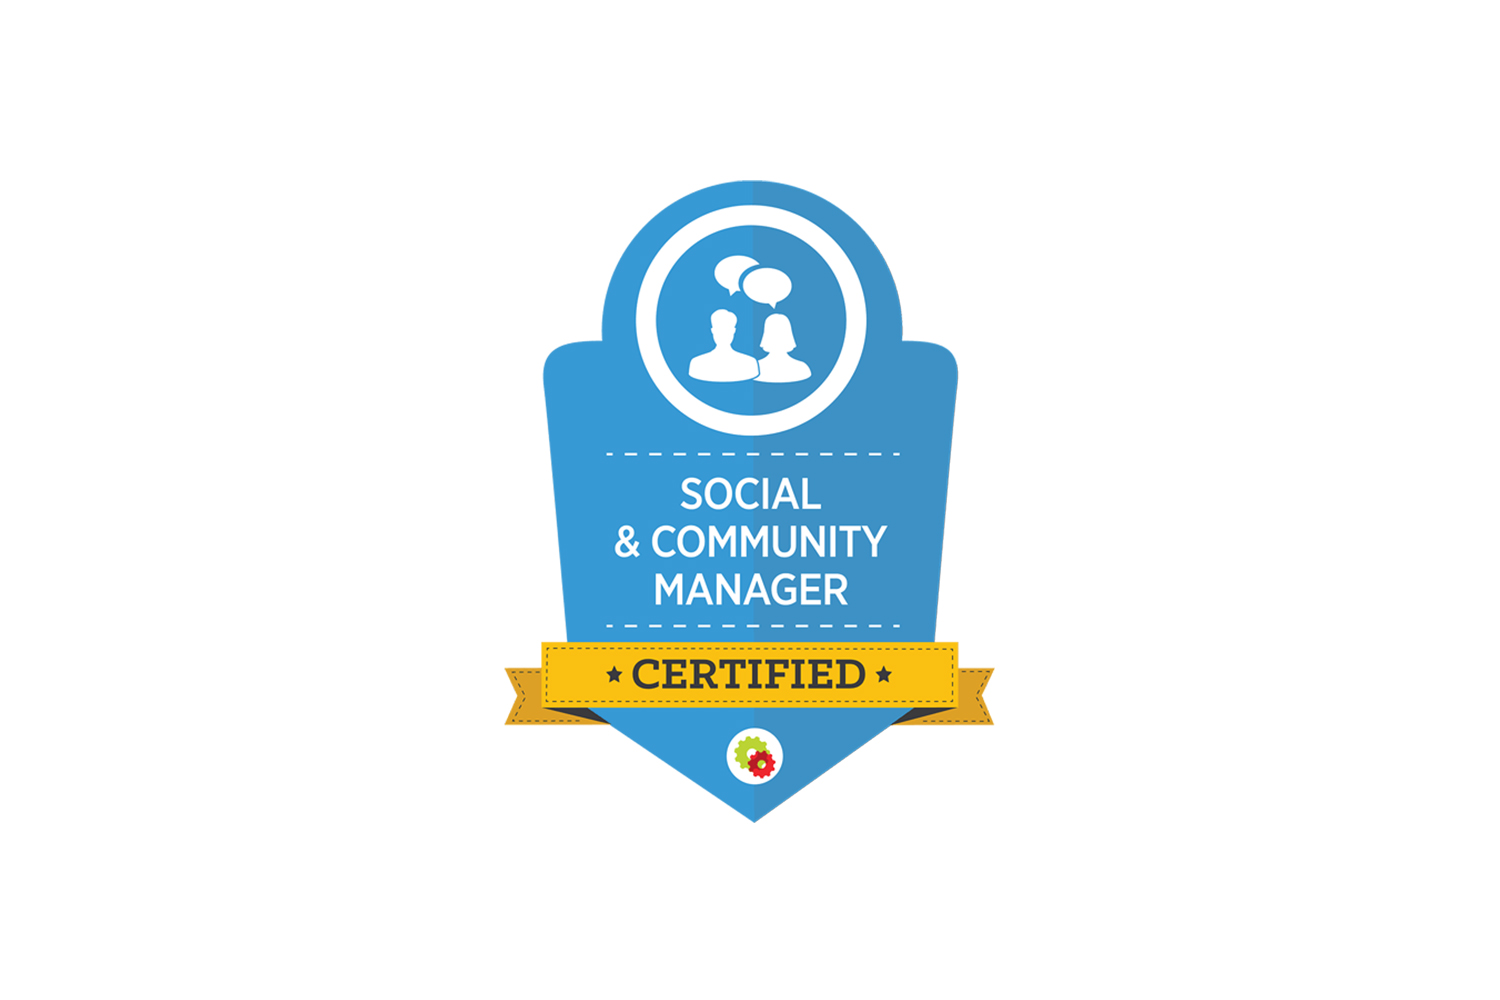 Social & Community Manager - Social & Community Managers are uniquely qualified to help brands and businesses leverage social media channels such as Facebook, Twitter, Pinterest, LinkedIn and YouTube. In short, a certified Social & Community Manager is capable of leveraging all four stages of social media success: Social Listening, Social Influencing, Social Networking and Social Selling.